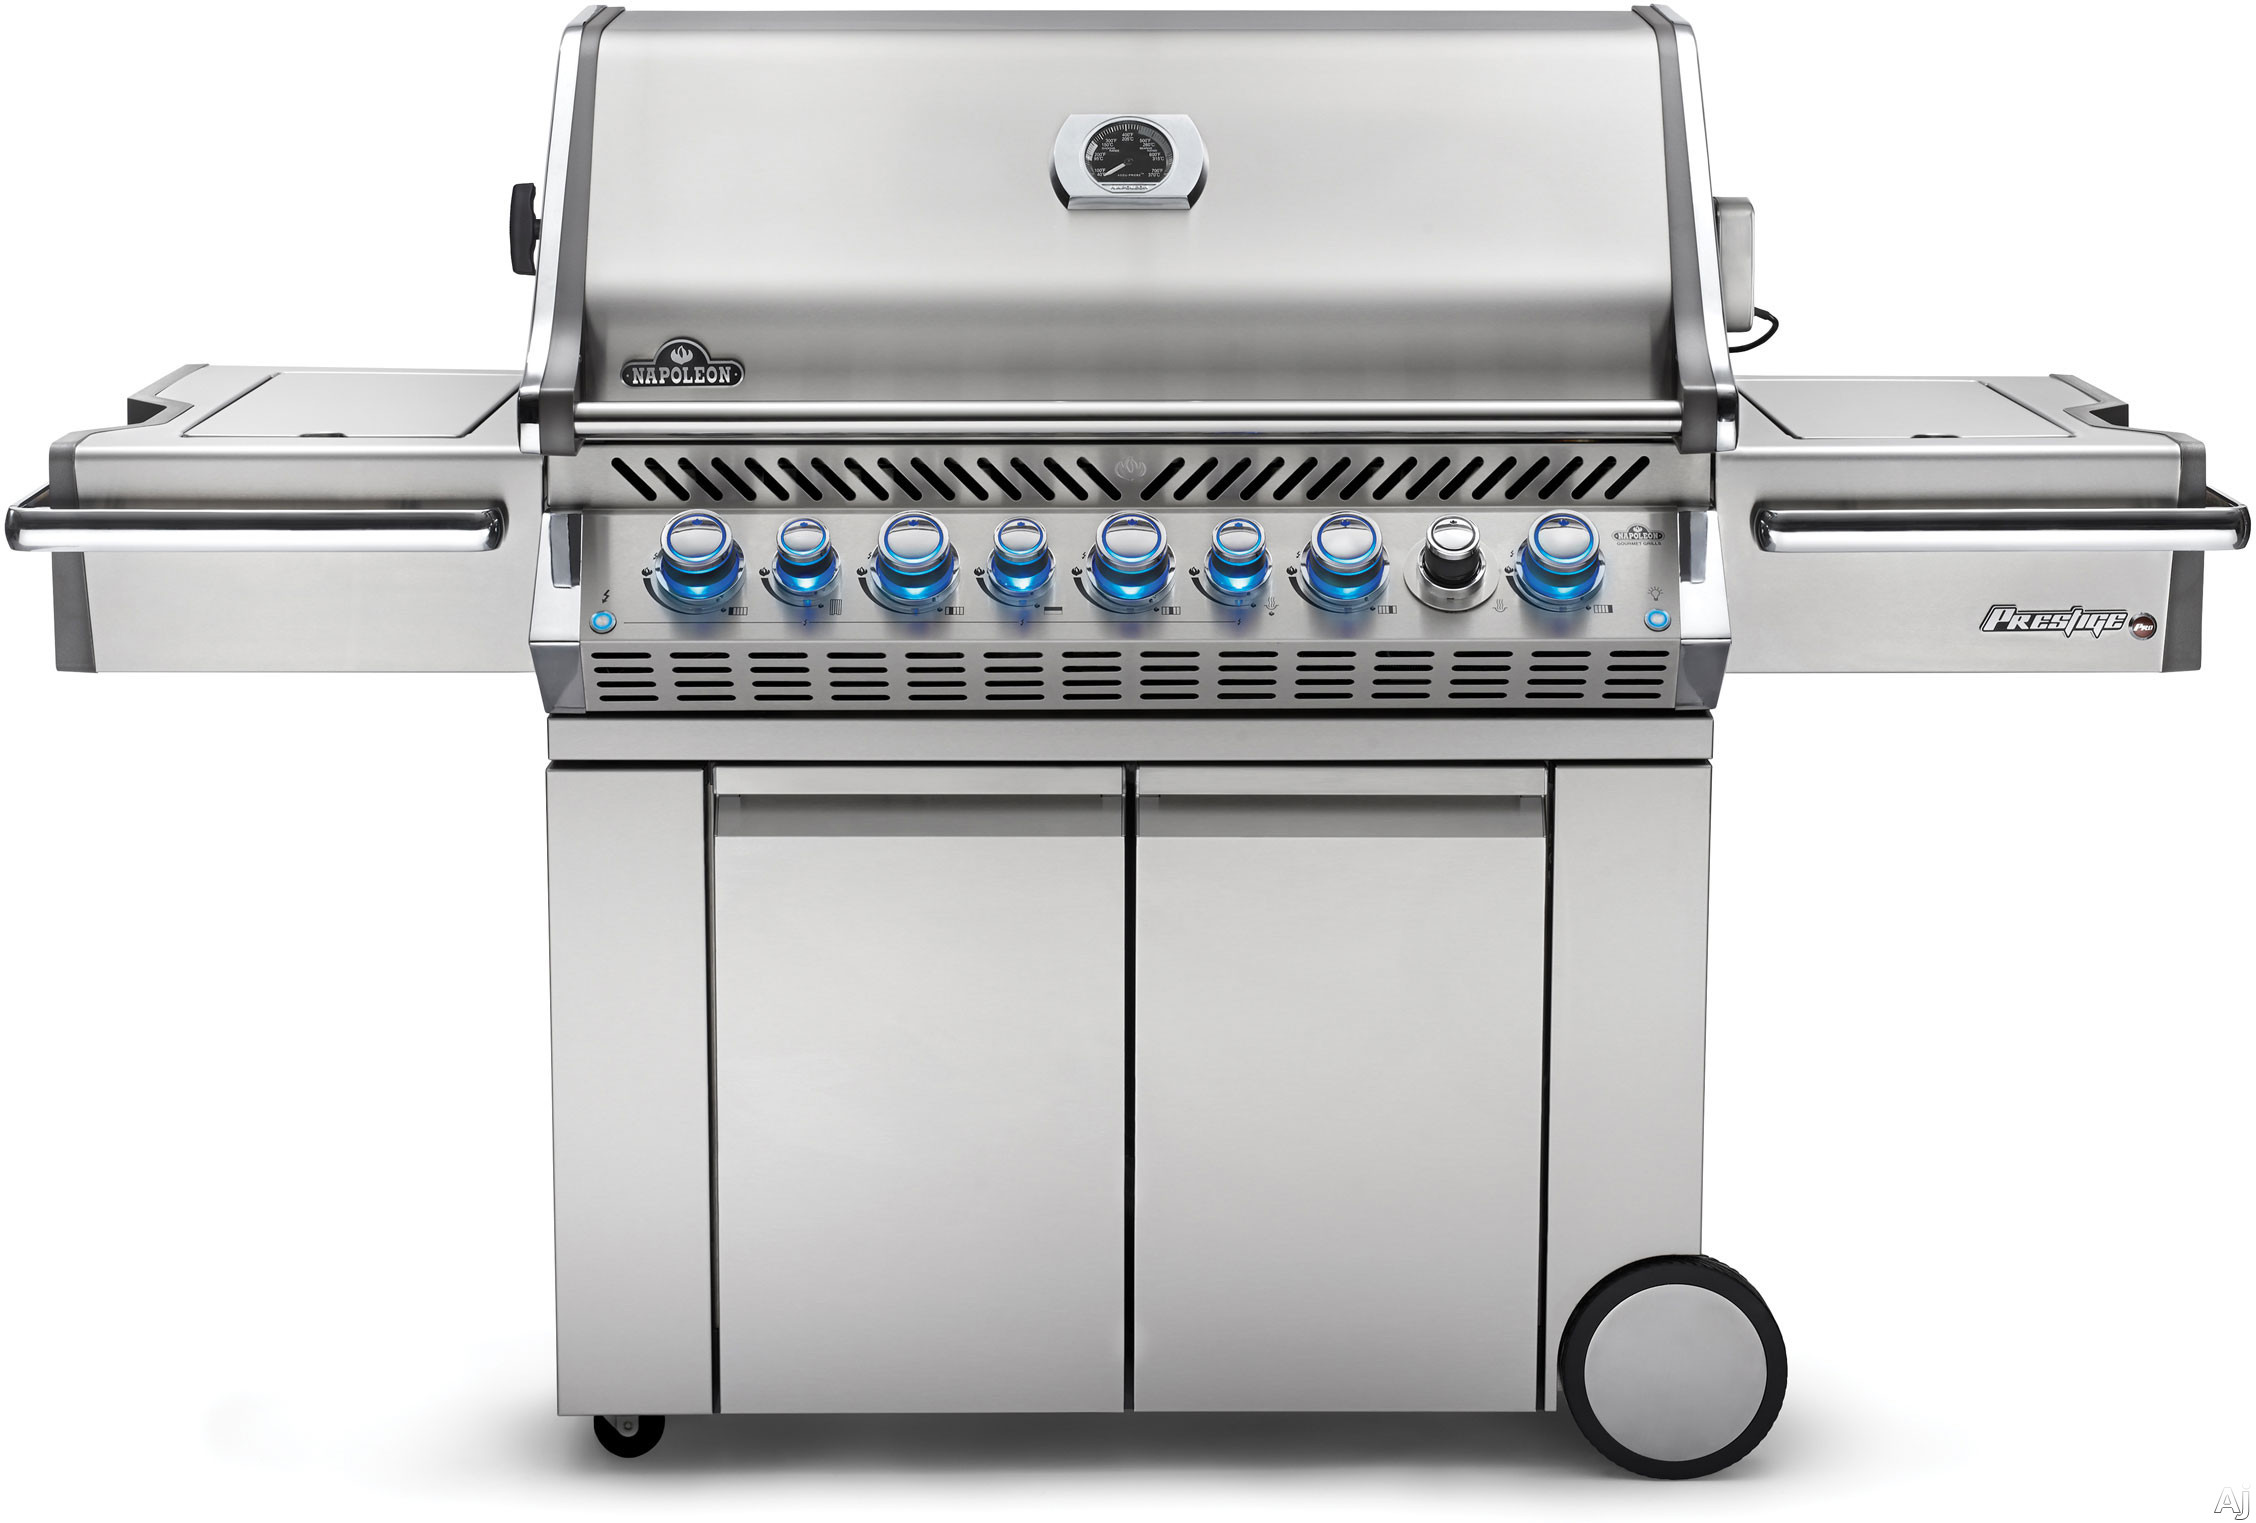 """Napoleon Prestige PRO Series PRO665RSIBPSS2 77 Inch Freestanding Gas Grill with 1,140 sq. in. Cooking Area, 99,000 Total BTU, 8 Burners, Infrared Sizzle Zoneâ""""¢ Side Burner, Rear Infrared Rotisser"""